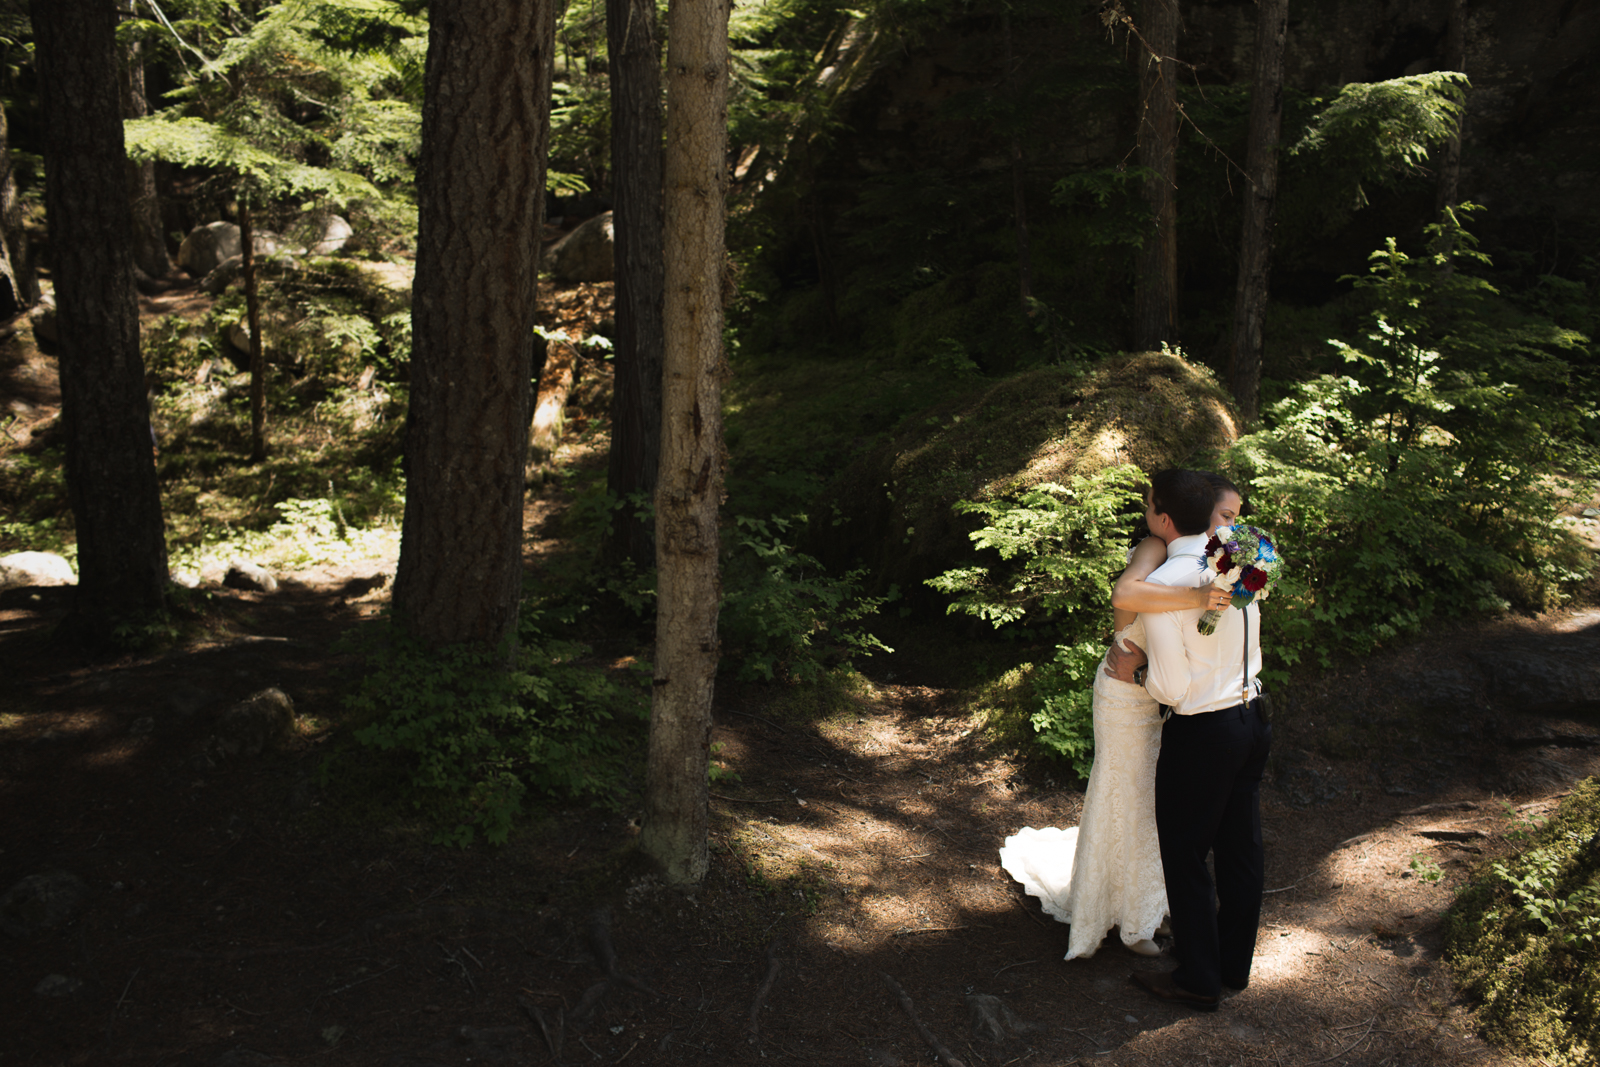 34Andrew_Pavlidis_Photography_Jess_and_Tristan_Revelstoke_Elopement_Calgary_Wedding_Photographer-2